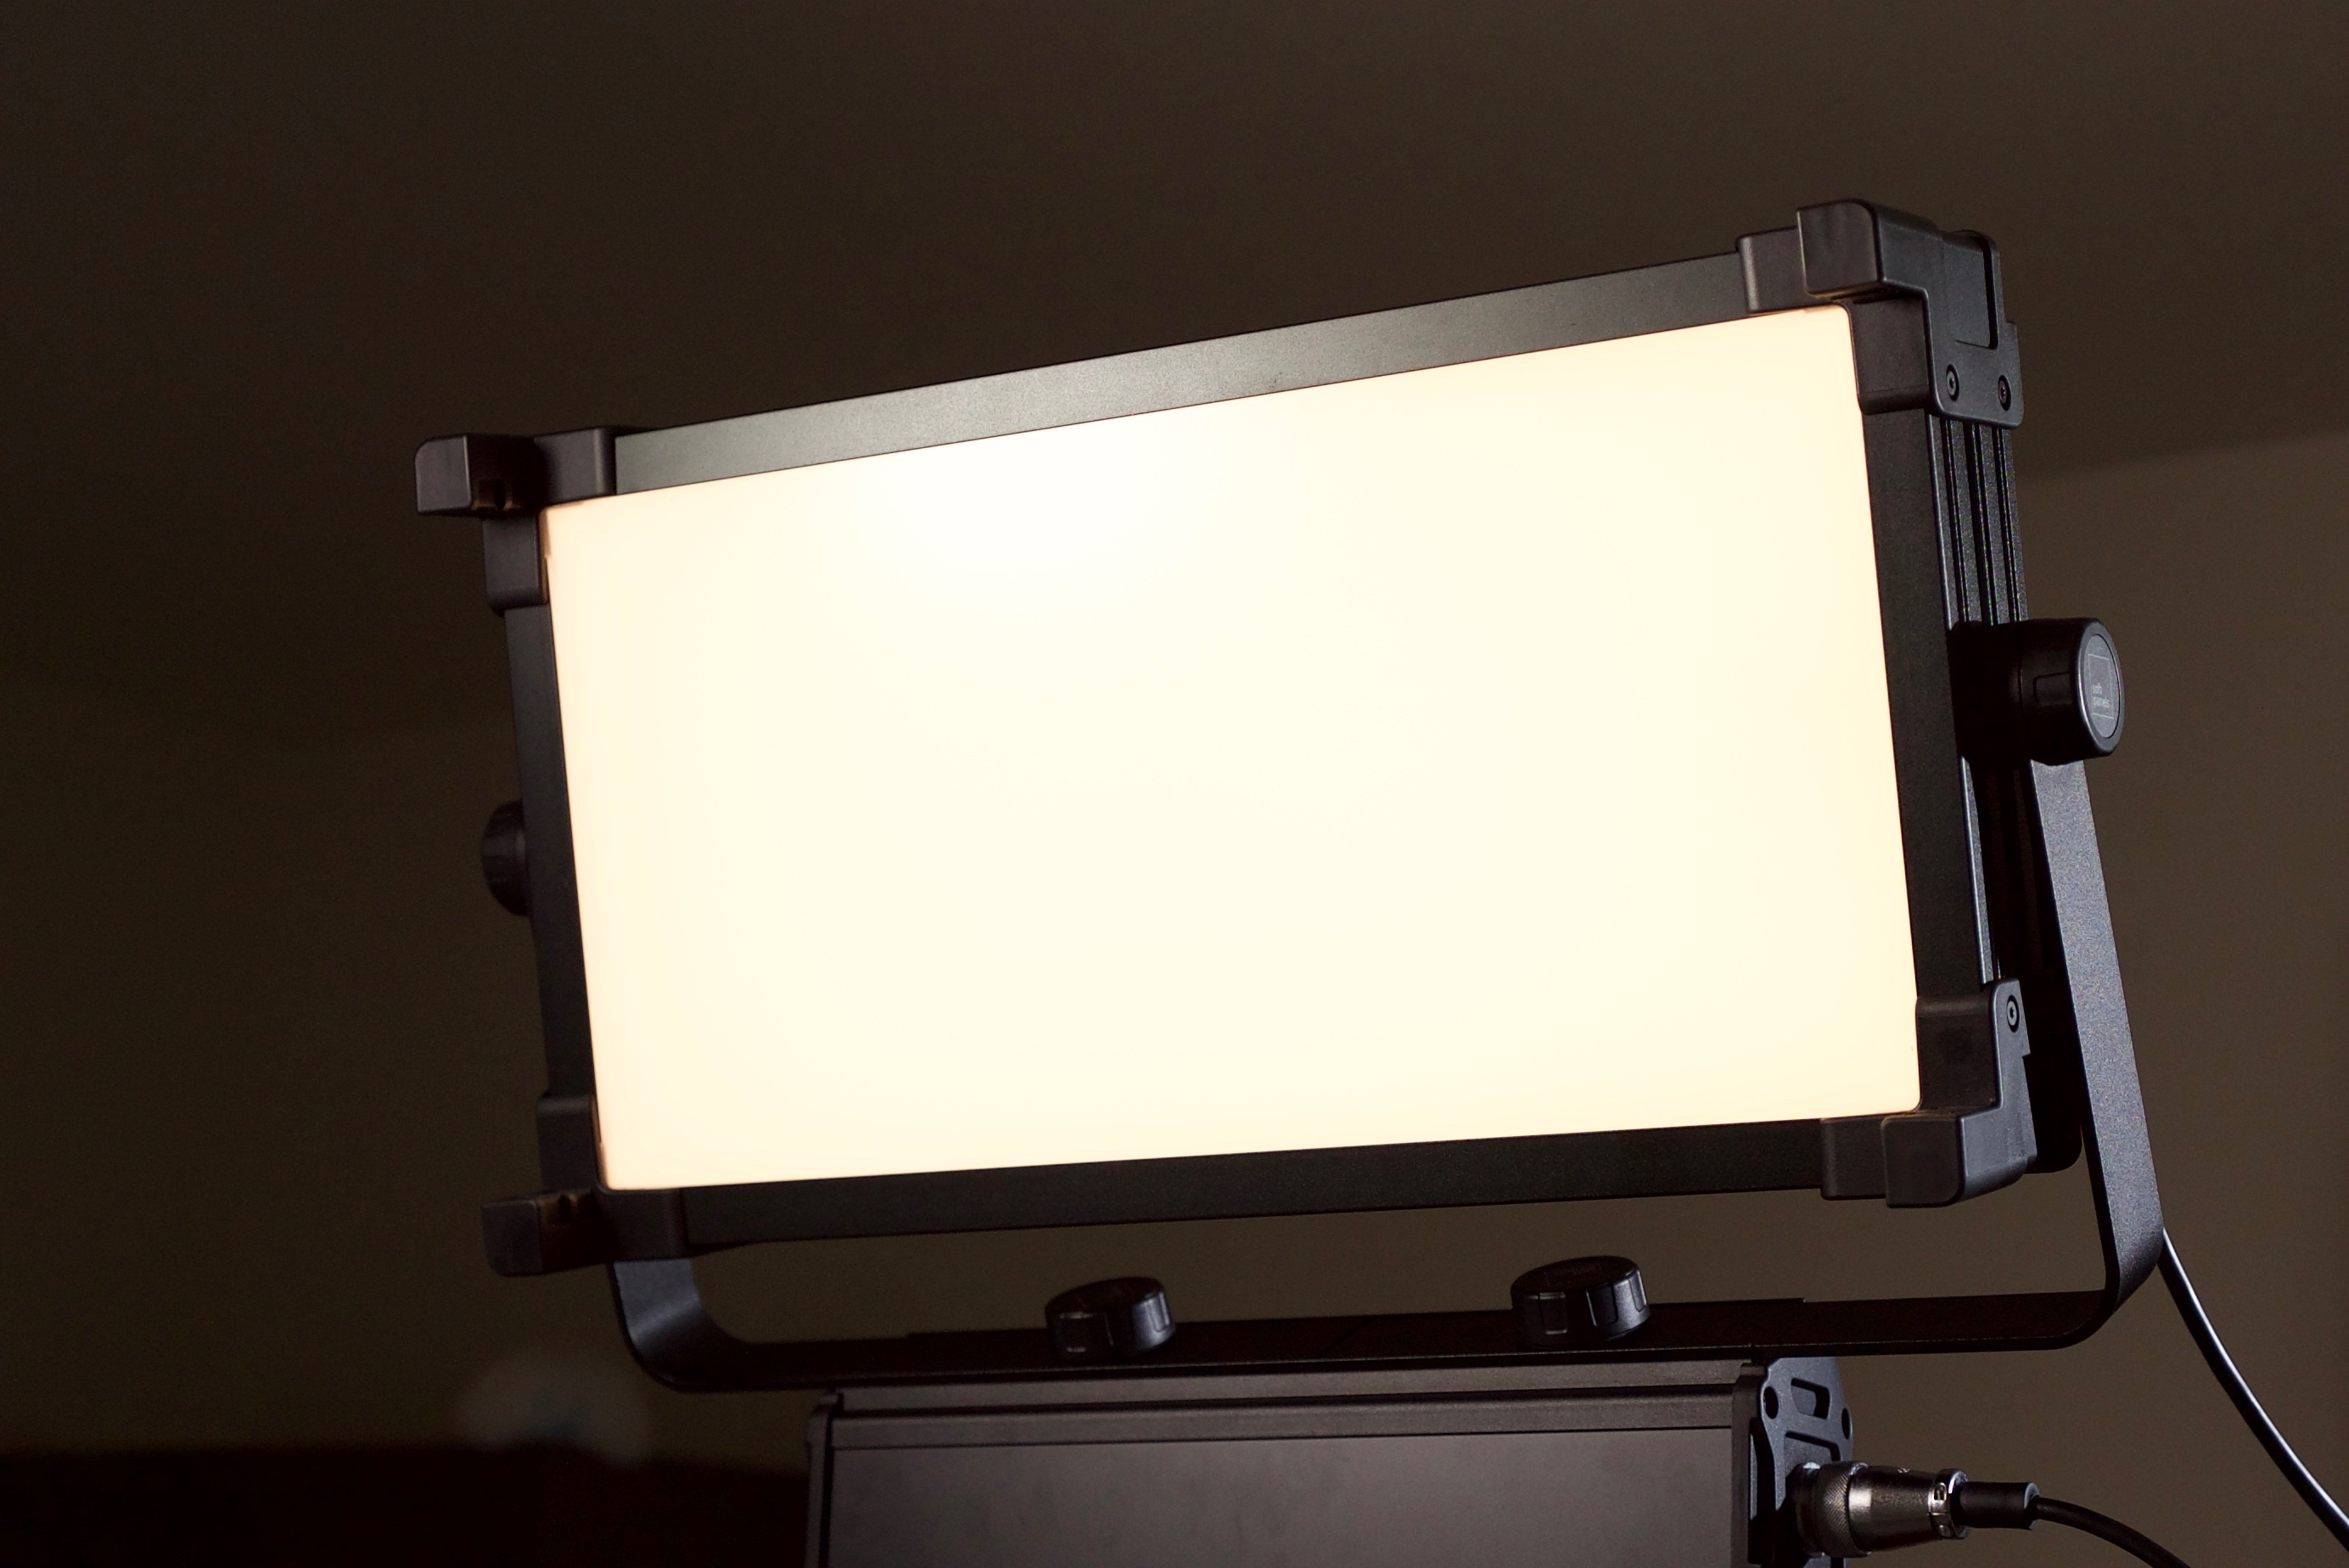 SoftPanels Autocolor matching 1x2 LED light Review - Newsshooter